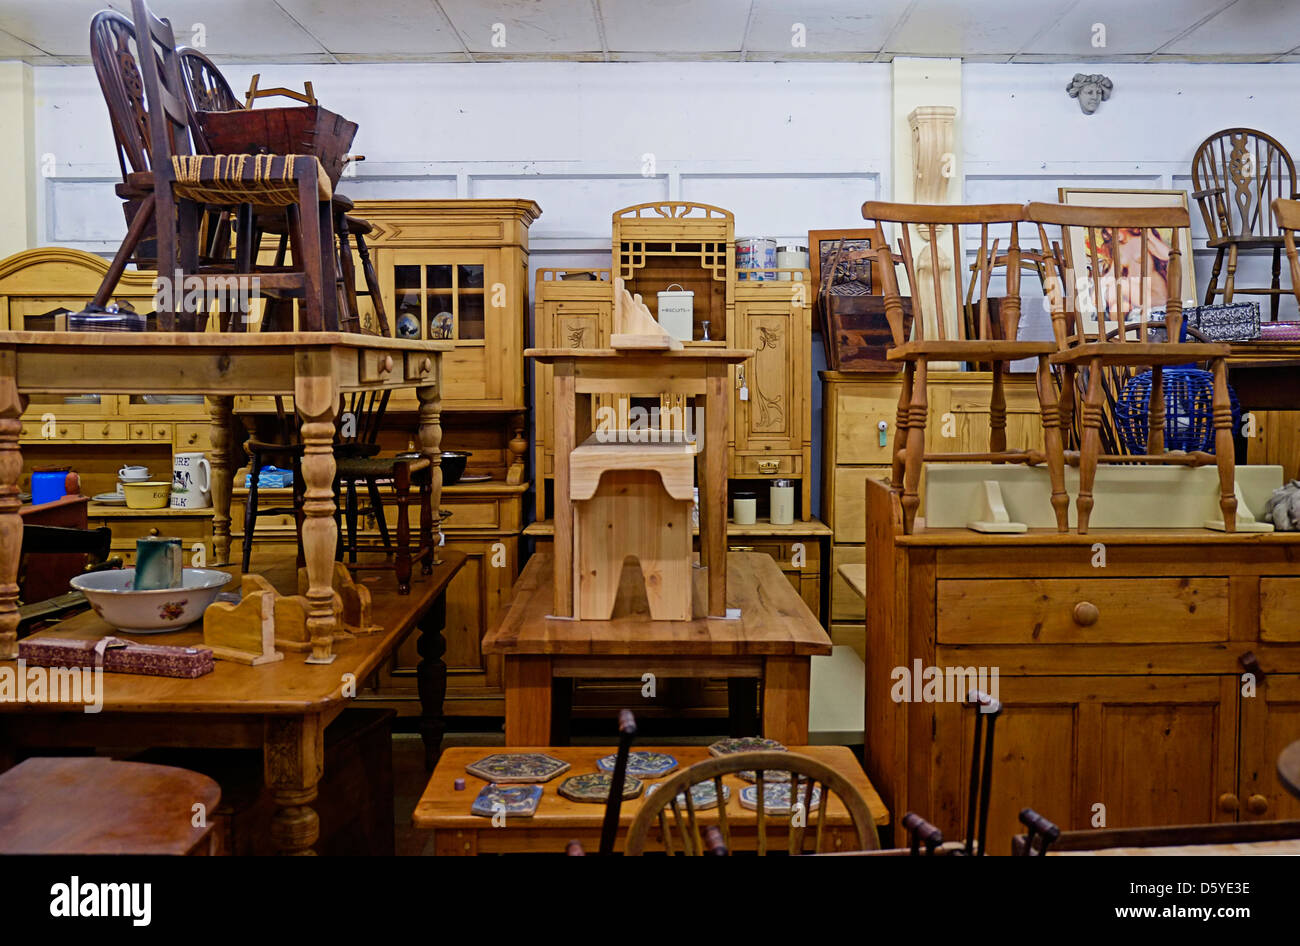 Antique furniture shop in Ireland - Stock Image - Furniture Shop Stock Photos & Furniture Shop Stock Images - Alamy